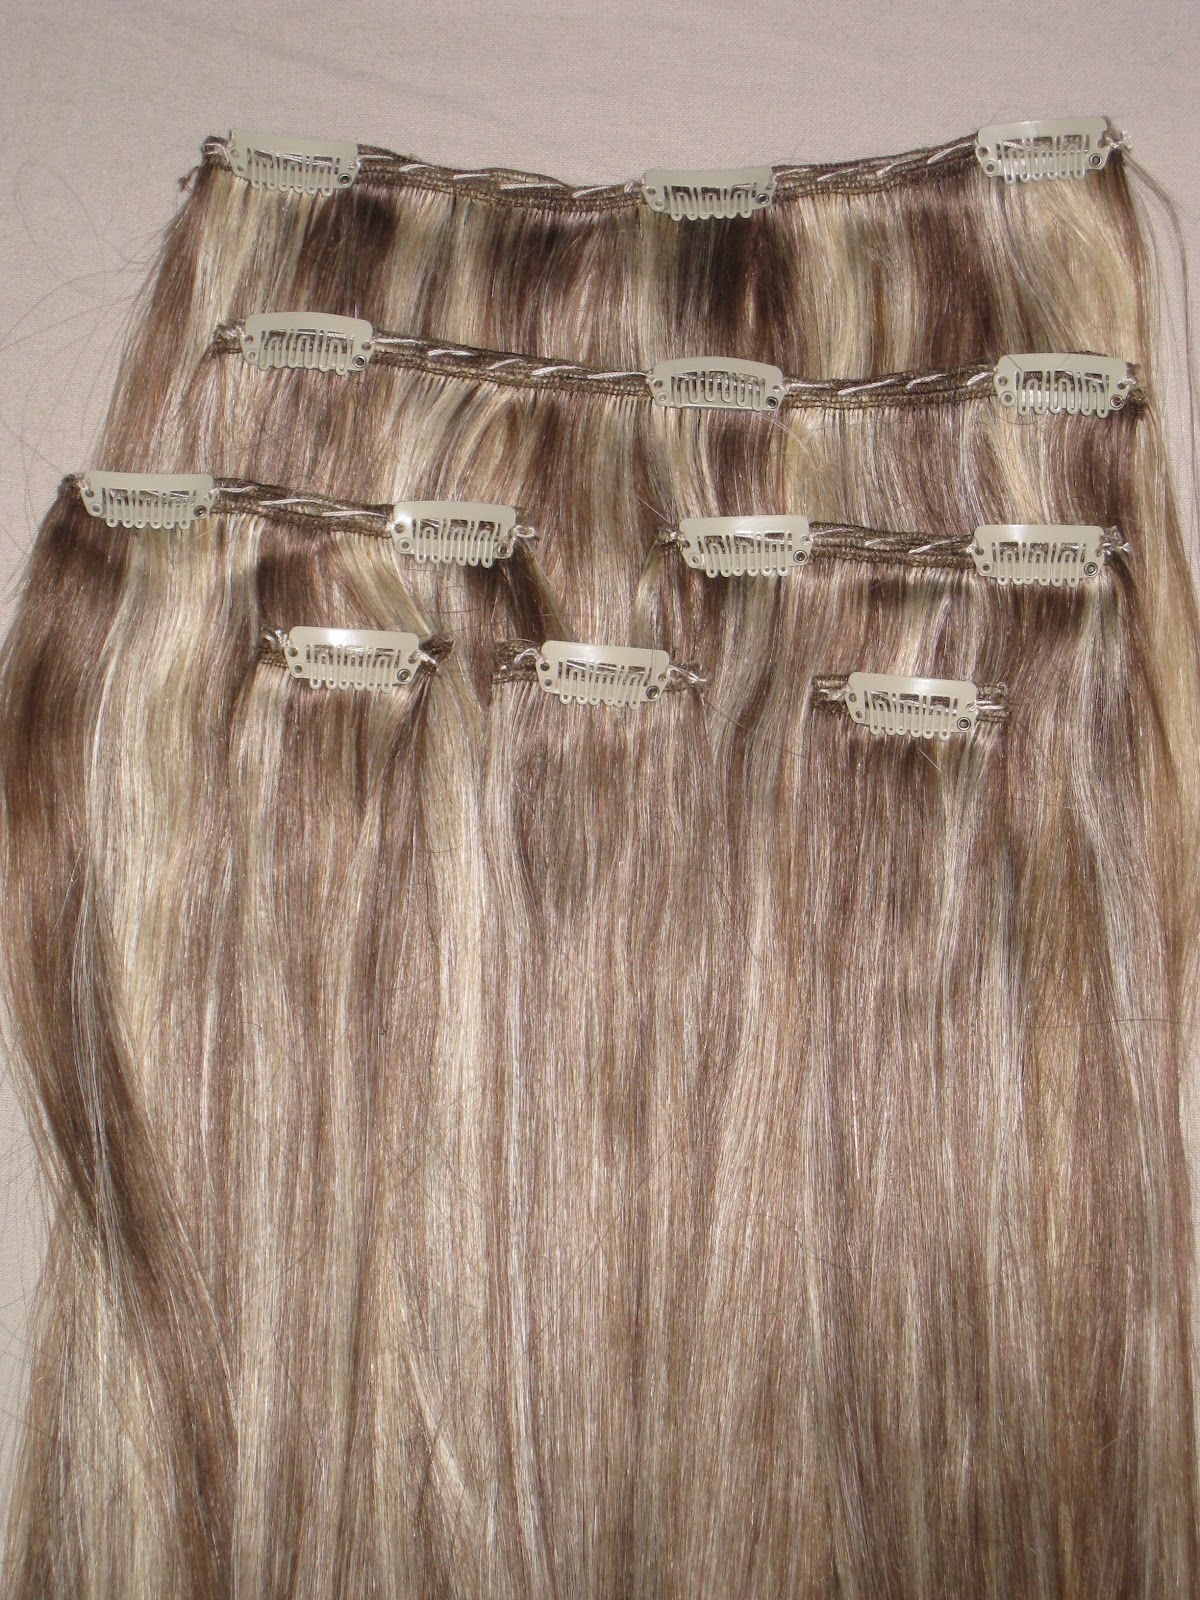 Nail fashion cliphair clip in hair extensions review cliphair clip in hair extensions review pmusecretfo Choice Image